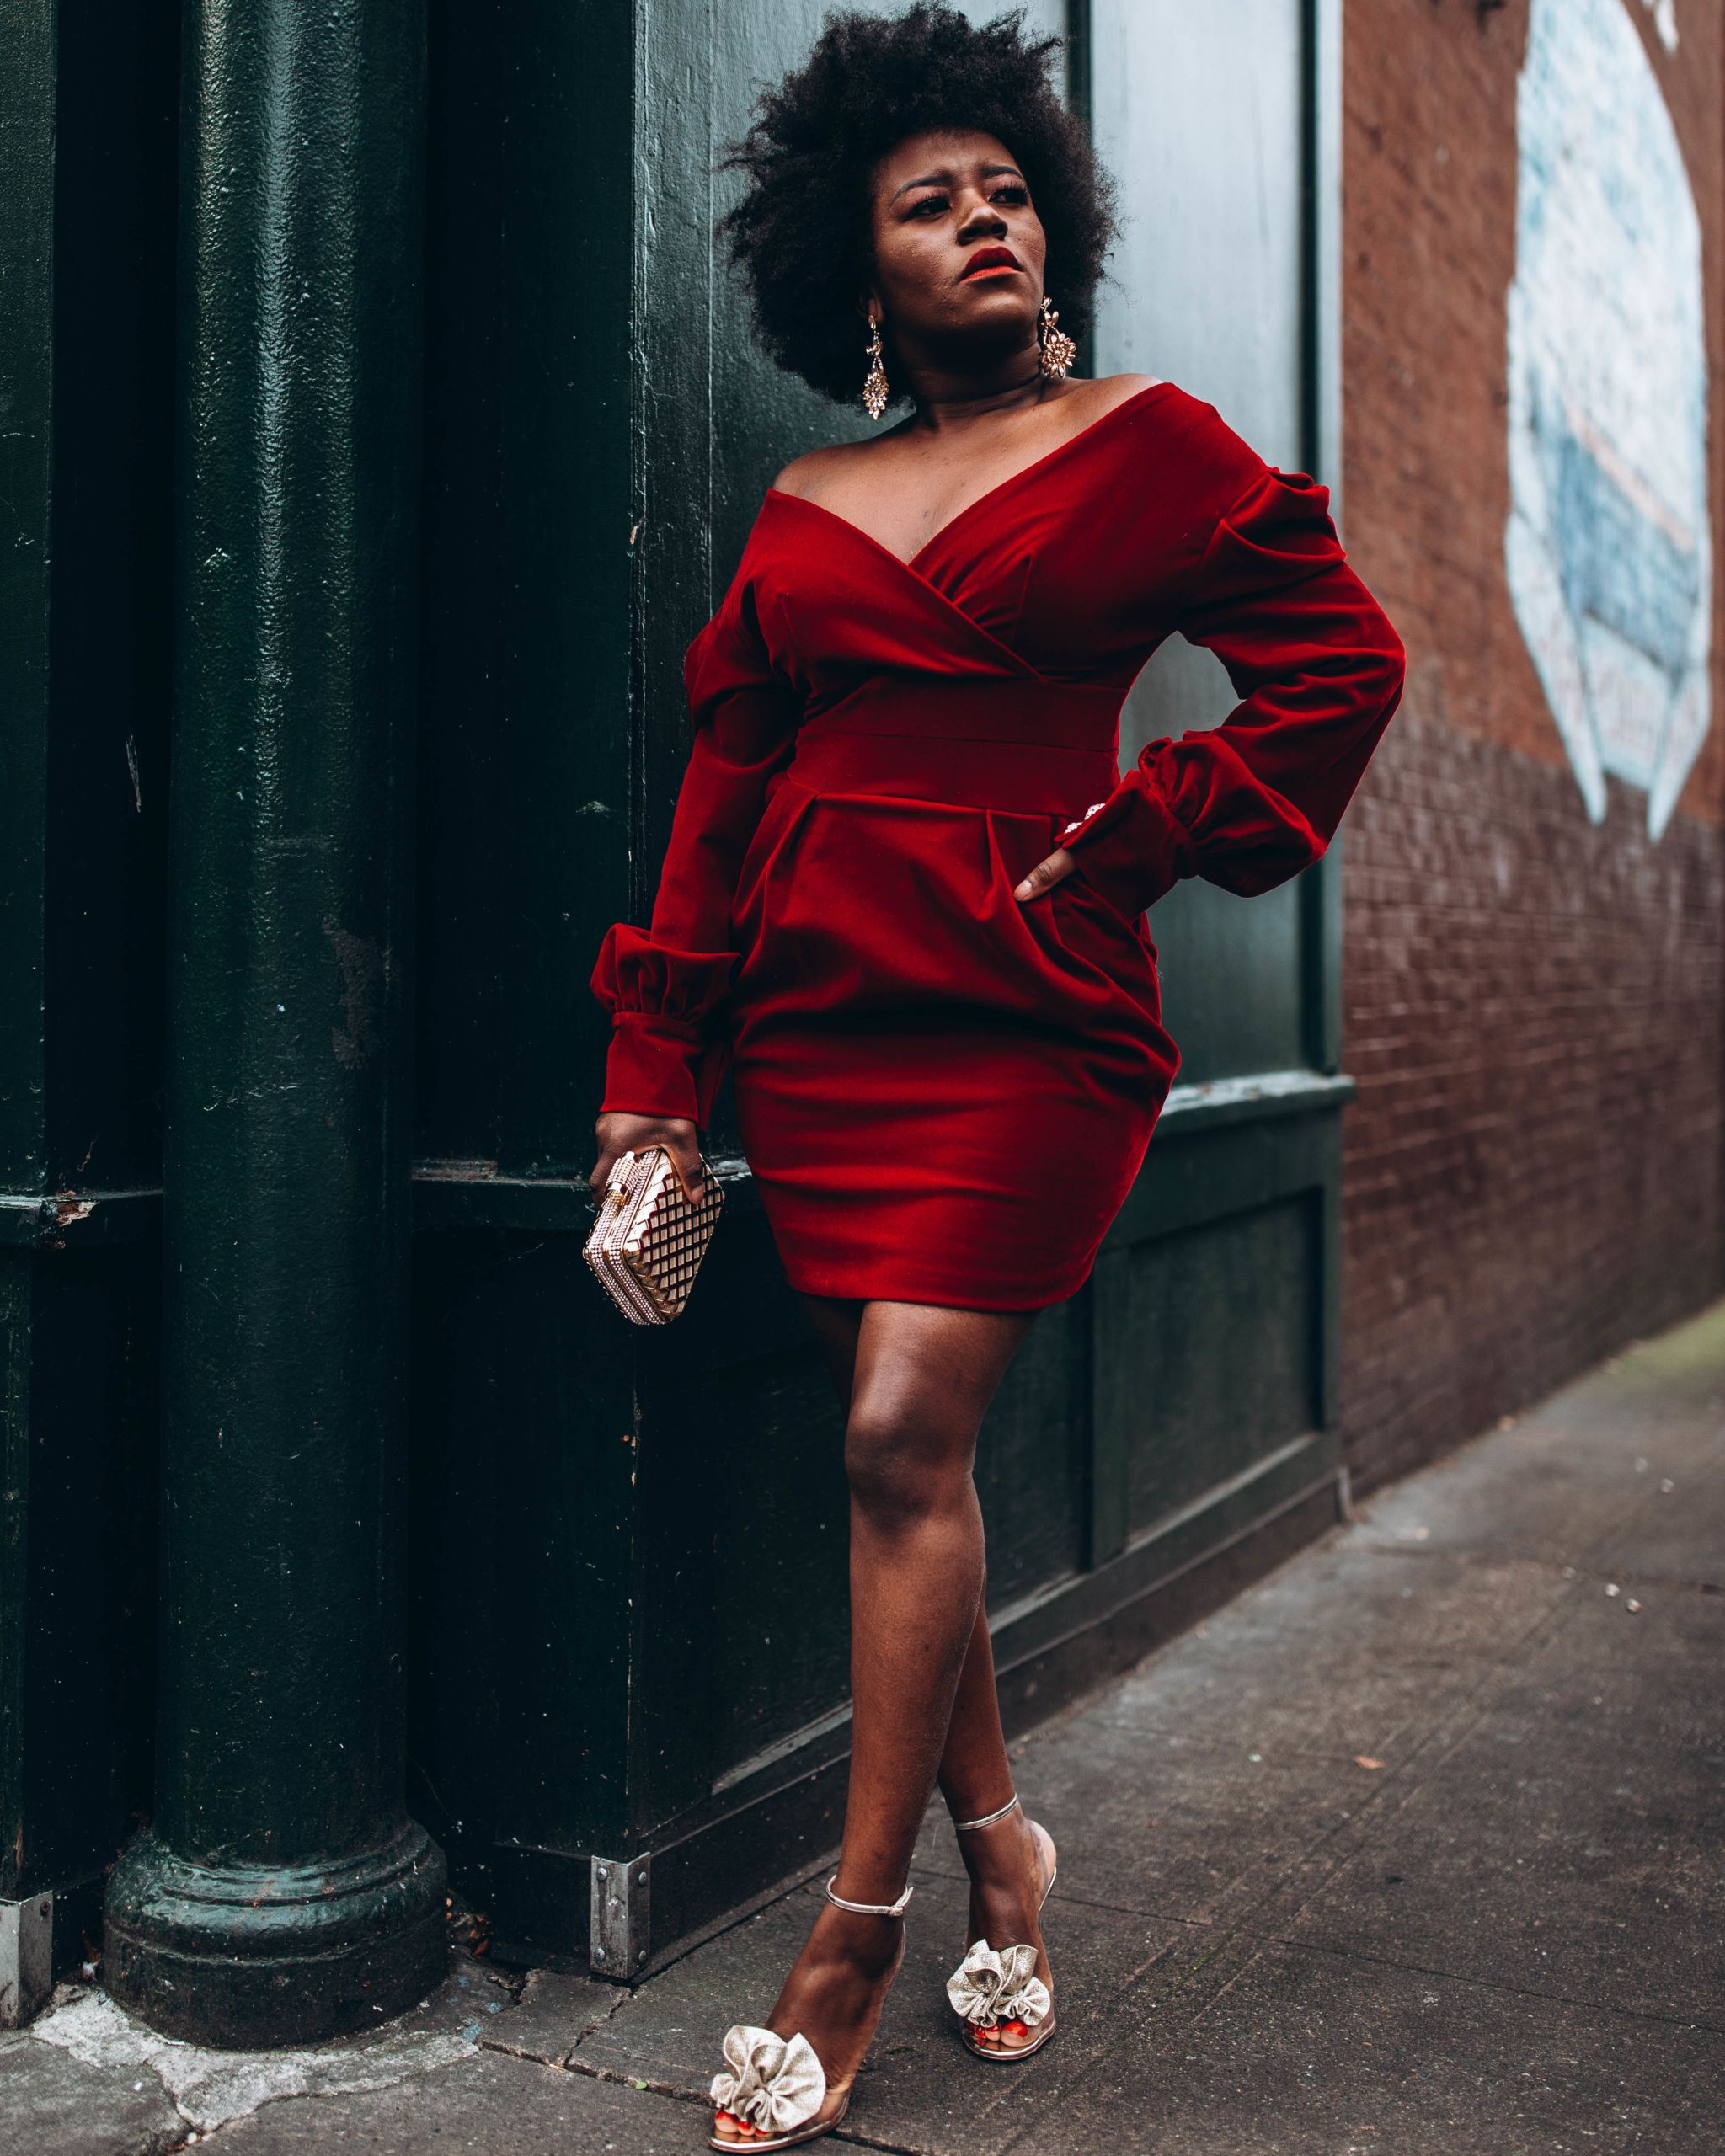 Christmas Party Look 2020 Velvet Christmas Party Outfit Ideas 2019 | Christmas party outfits